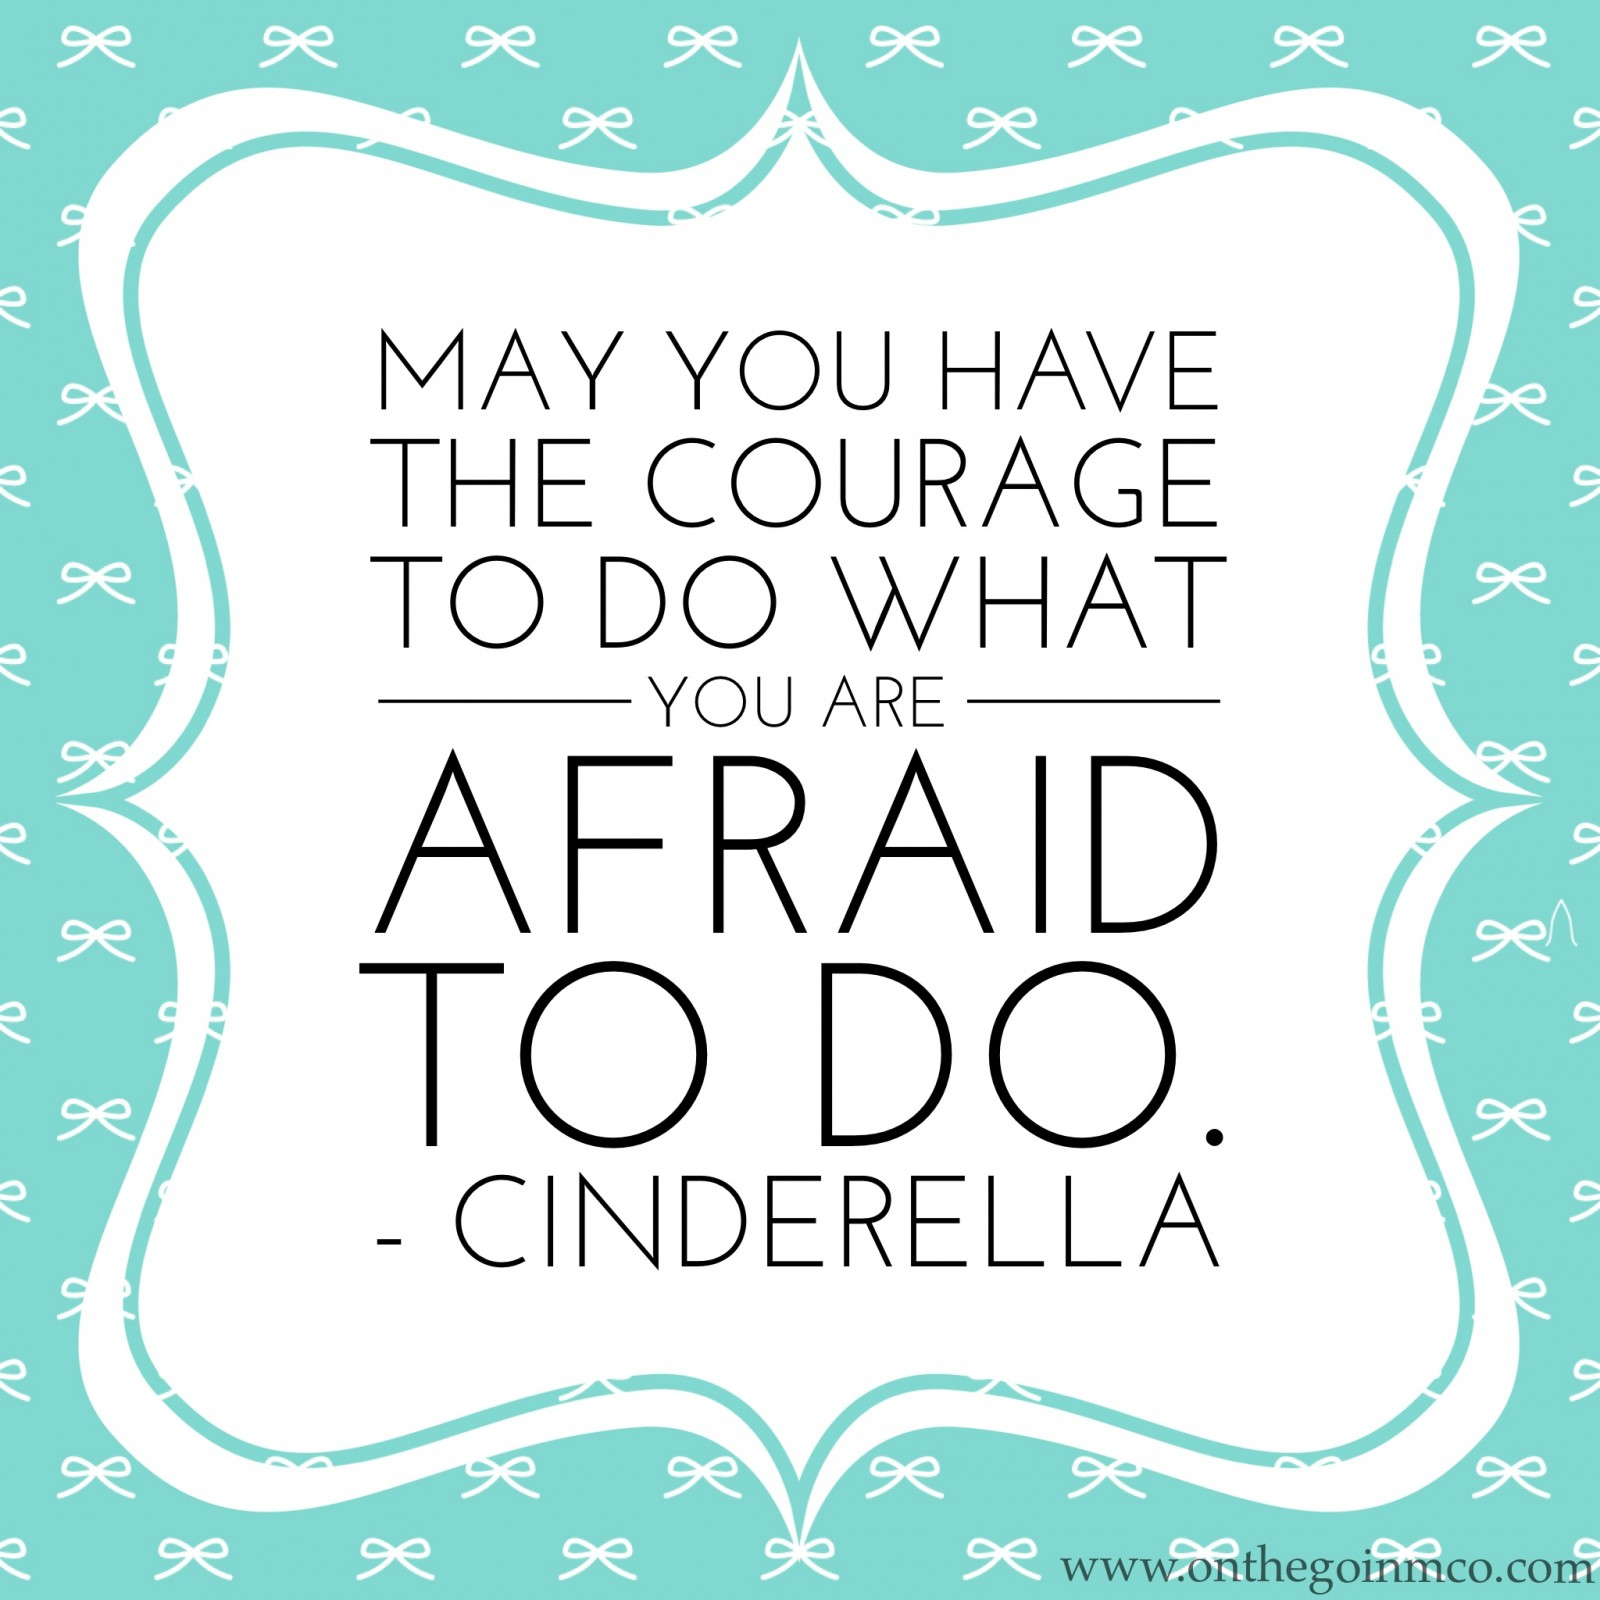 Disney Movie Quotes After a long week Cinderella